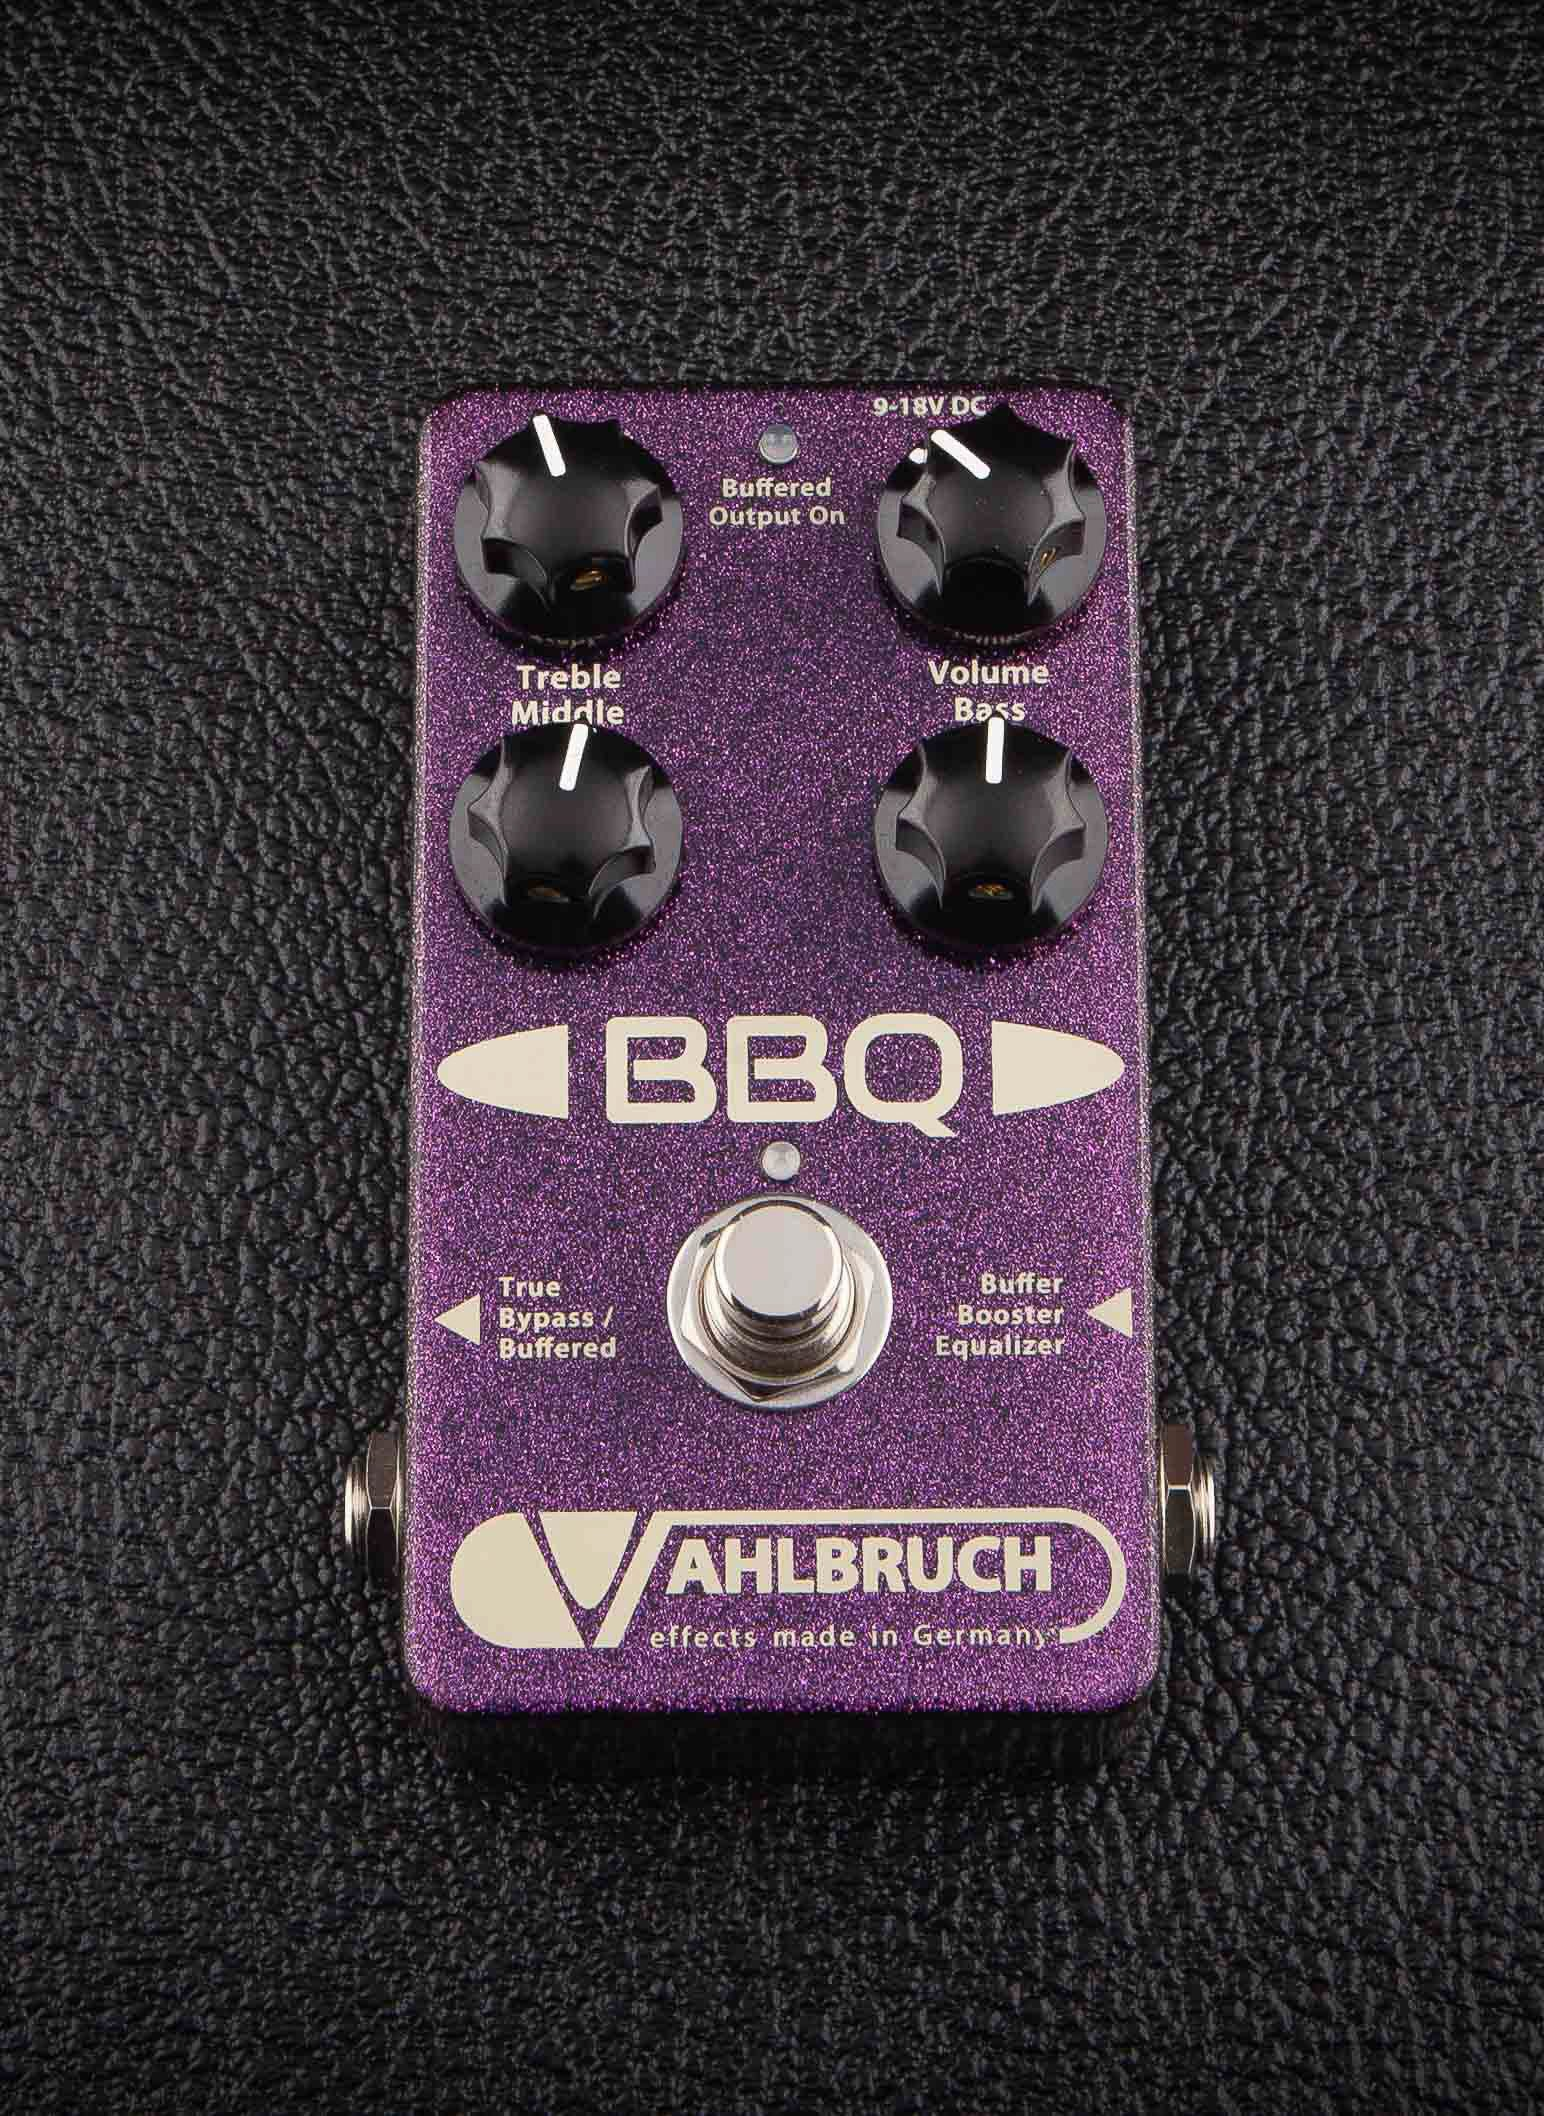 Vahlbruch BBQ - Buffer, Booster, eQualizer